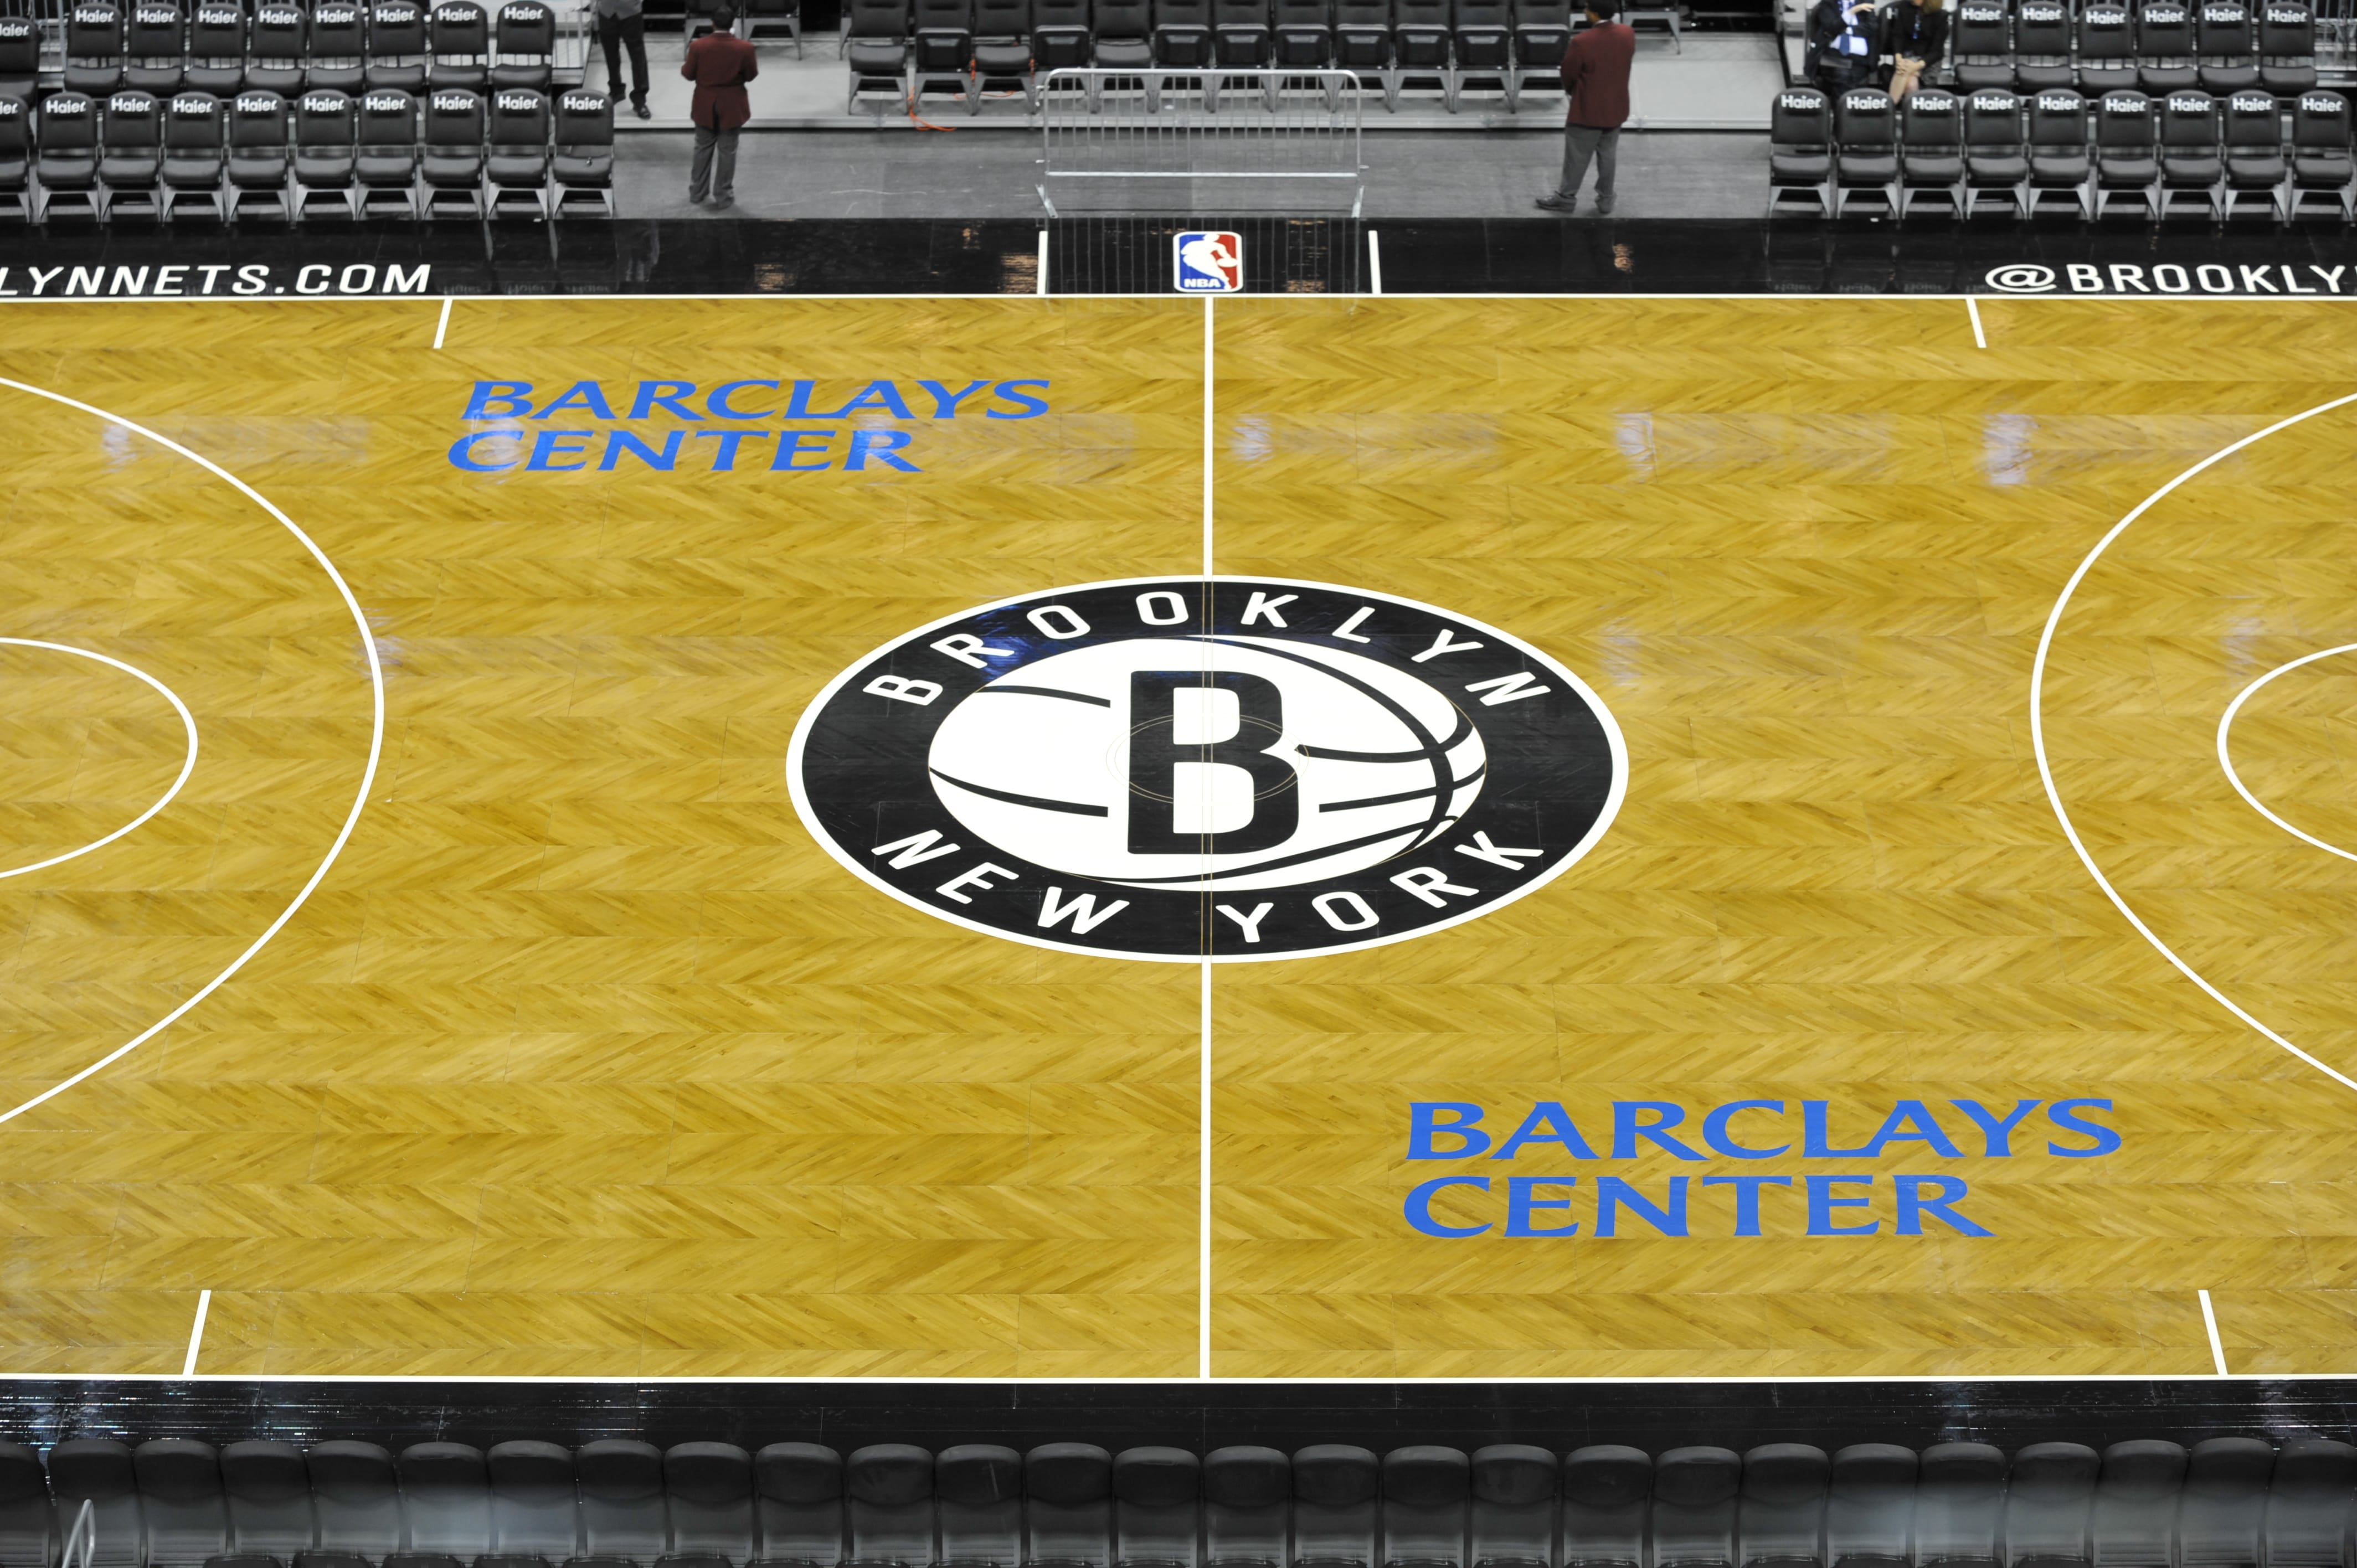 Brooklyn Nets Add Ewallet Payment System To Barclays Center